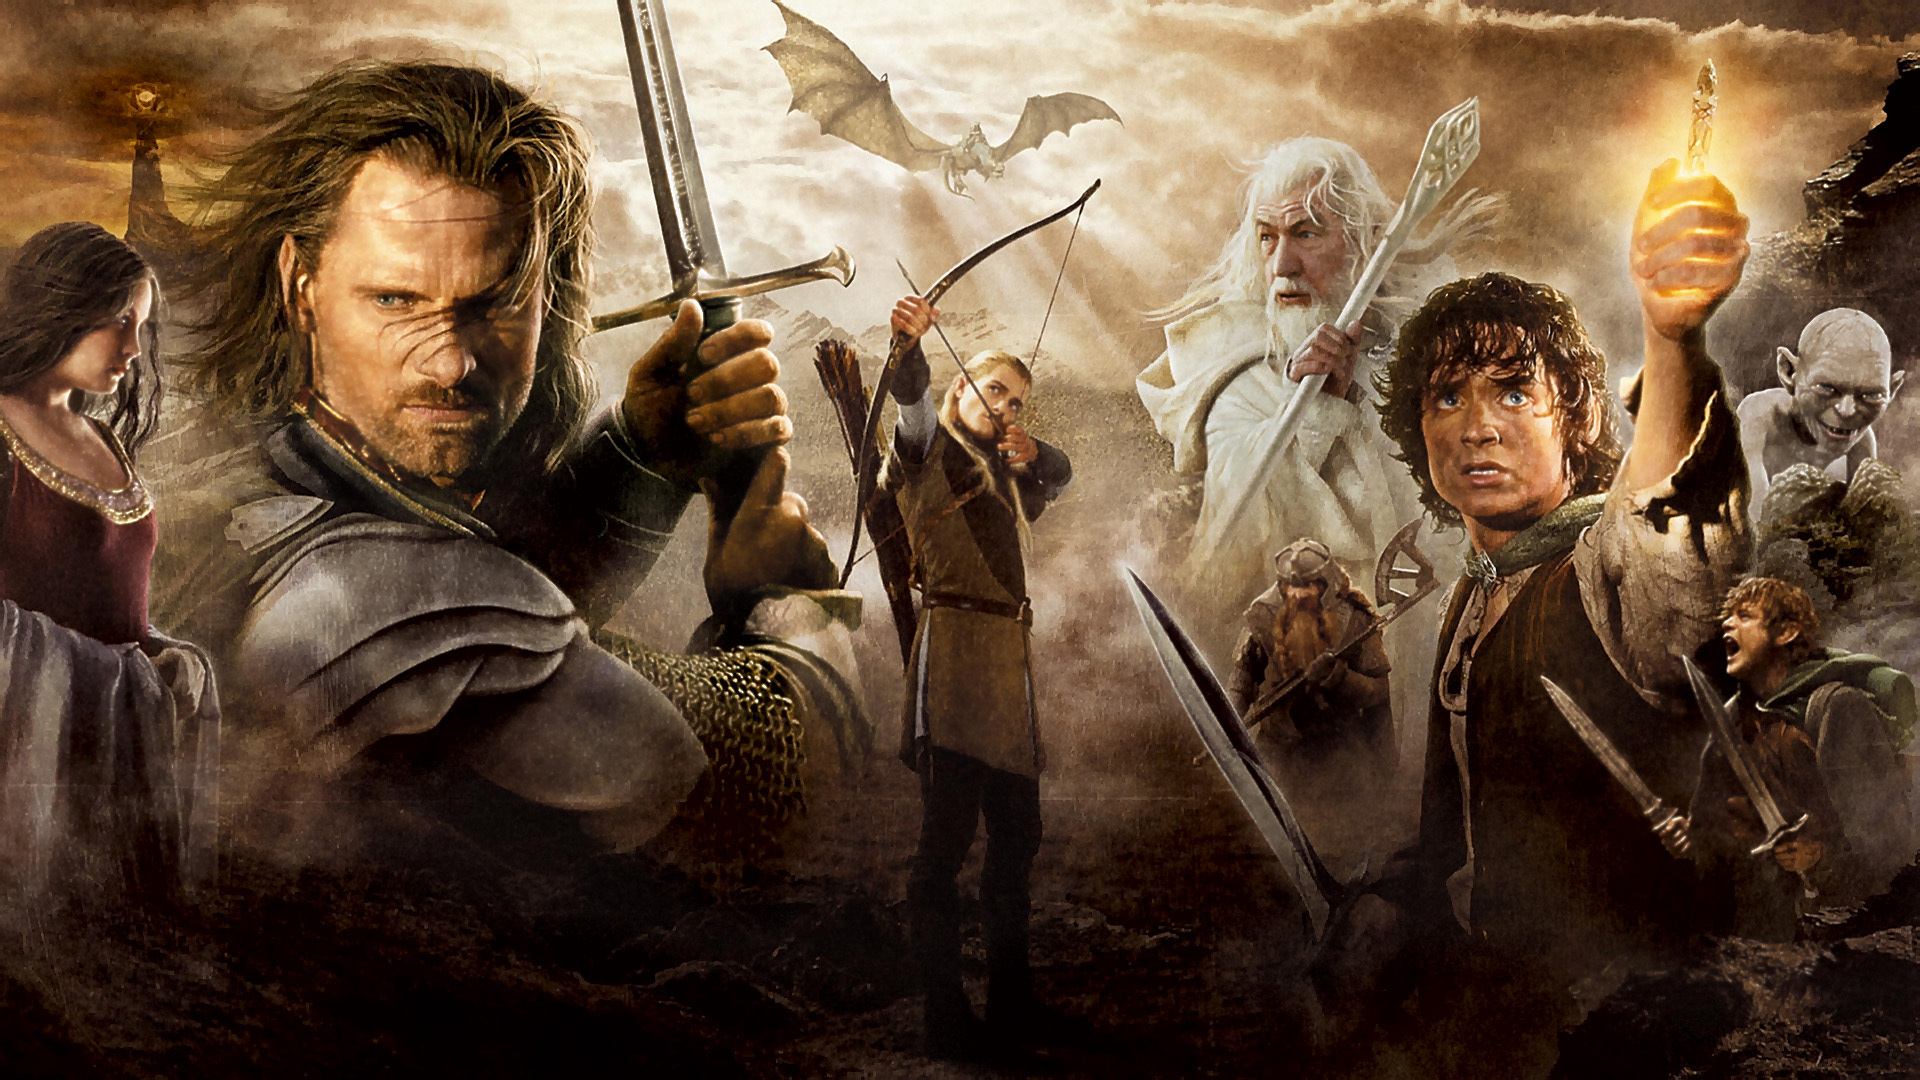 Gallery For gt Lord Of The Rings Wallpapers 1920x1080